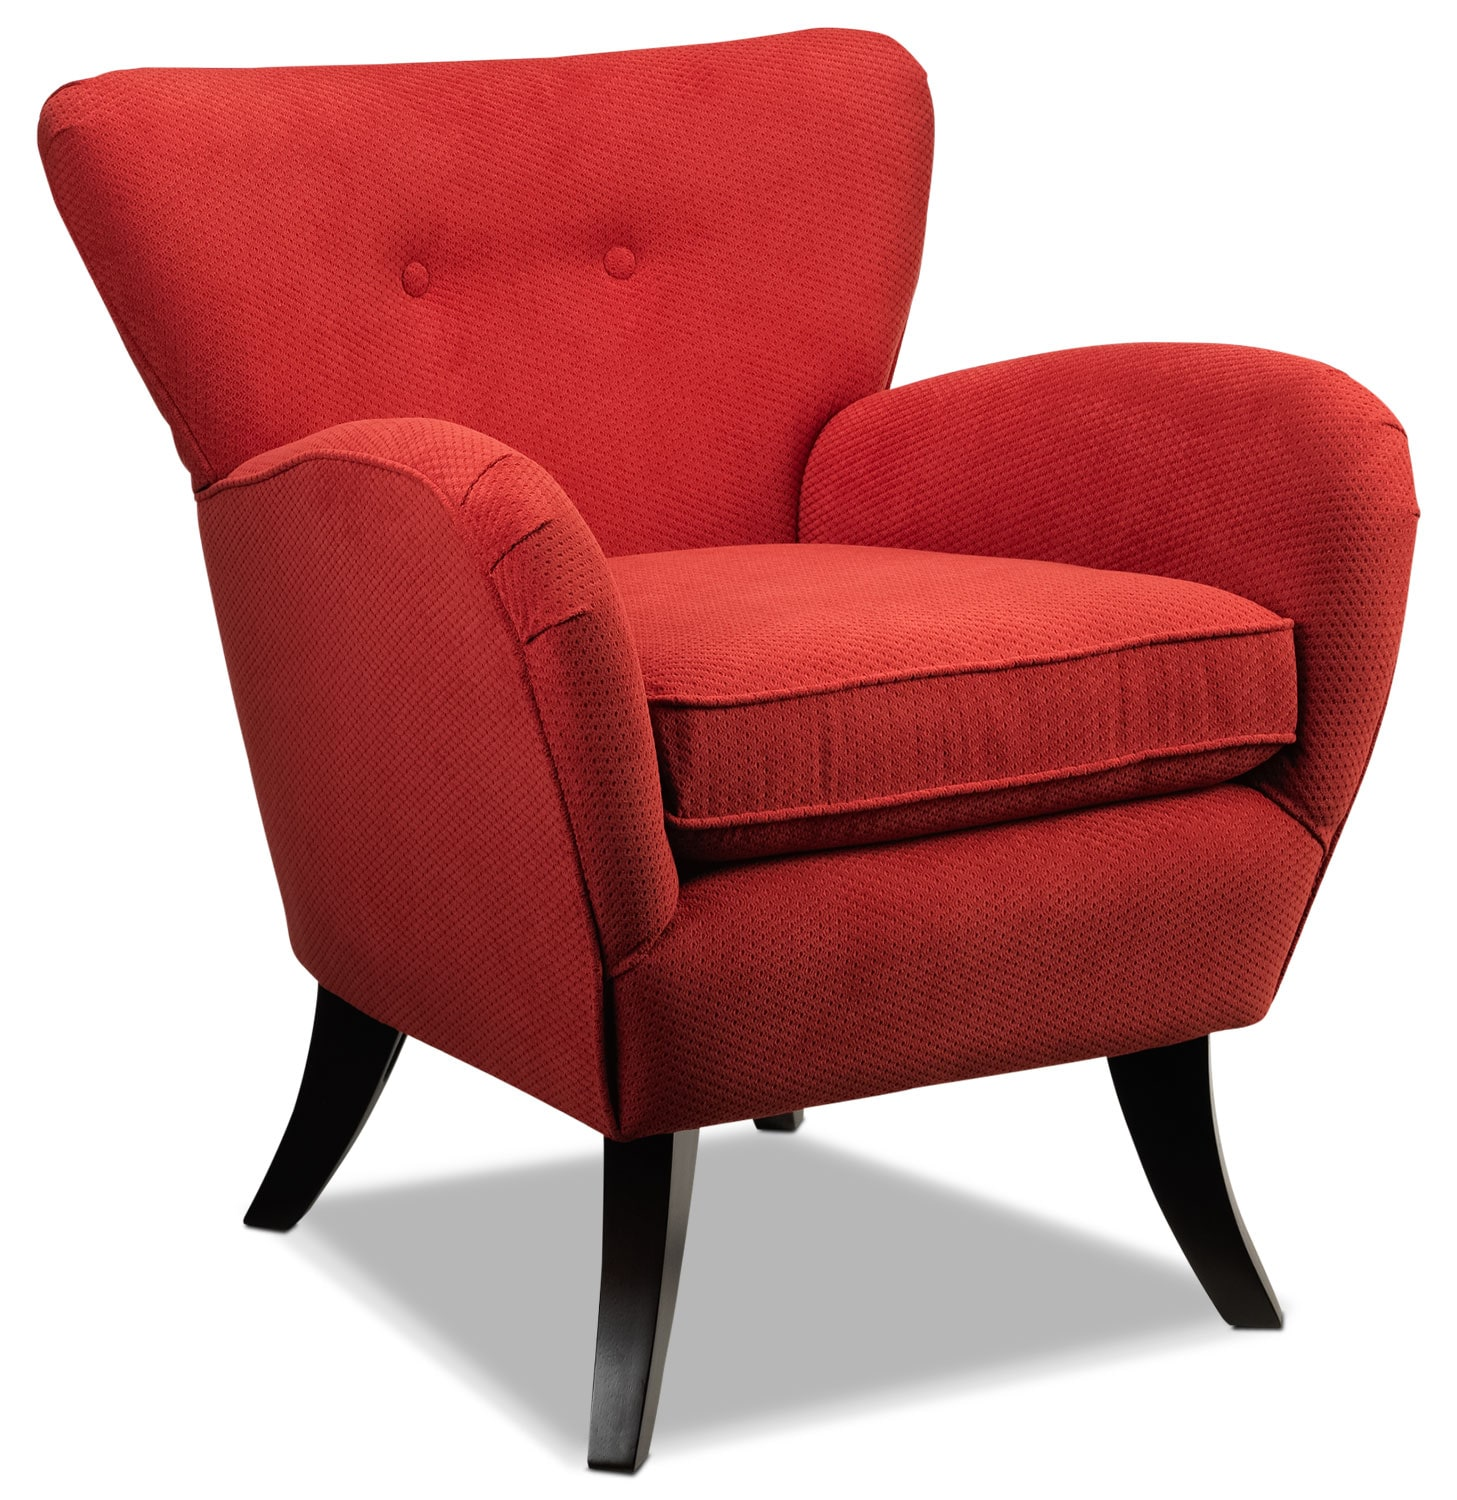 Elnora Accent Chair - Cherry Red